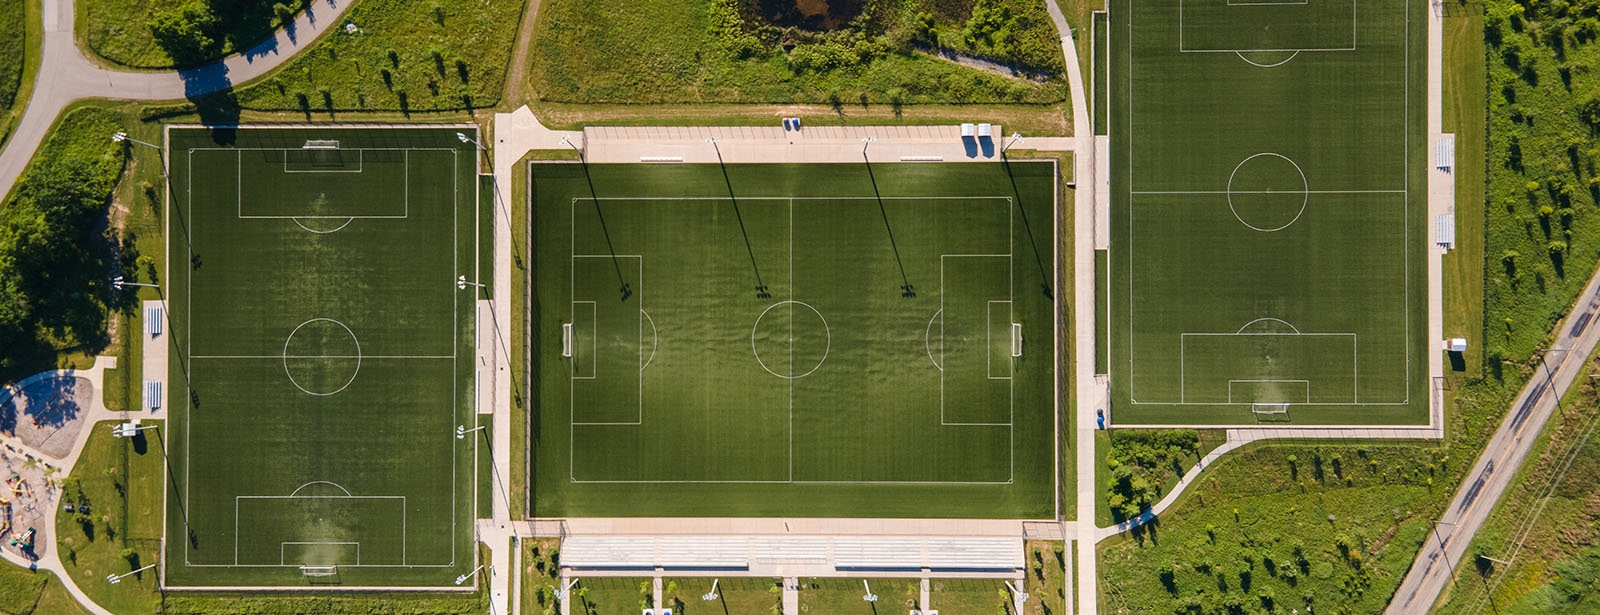 Aerial view of soccer fields with sports lighting